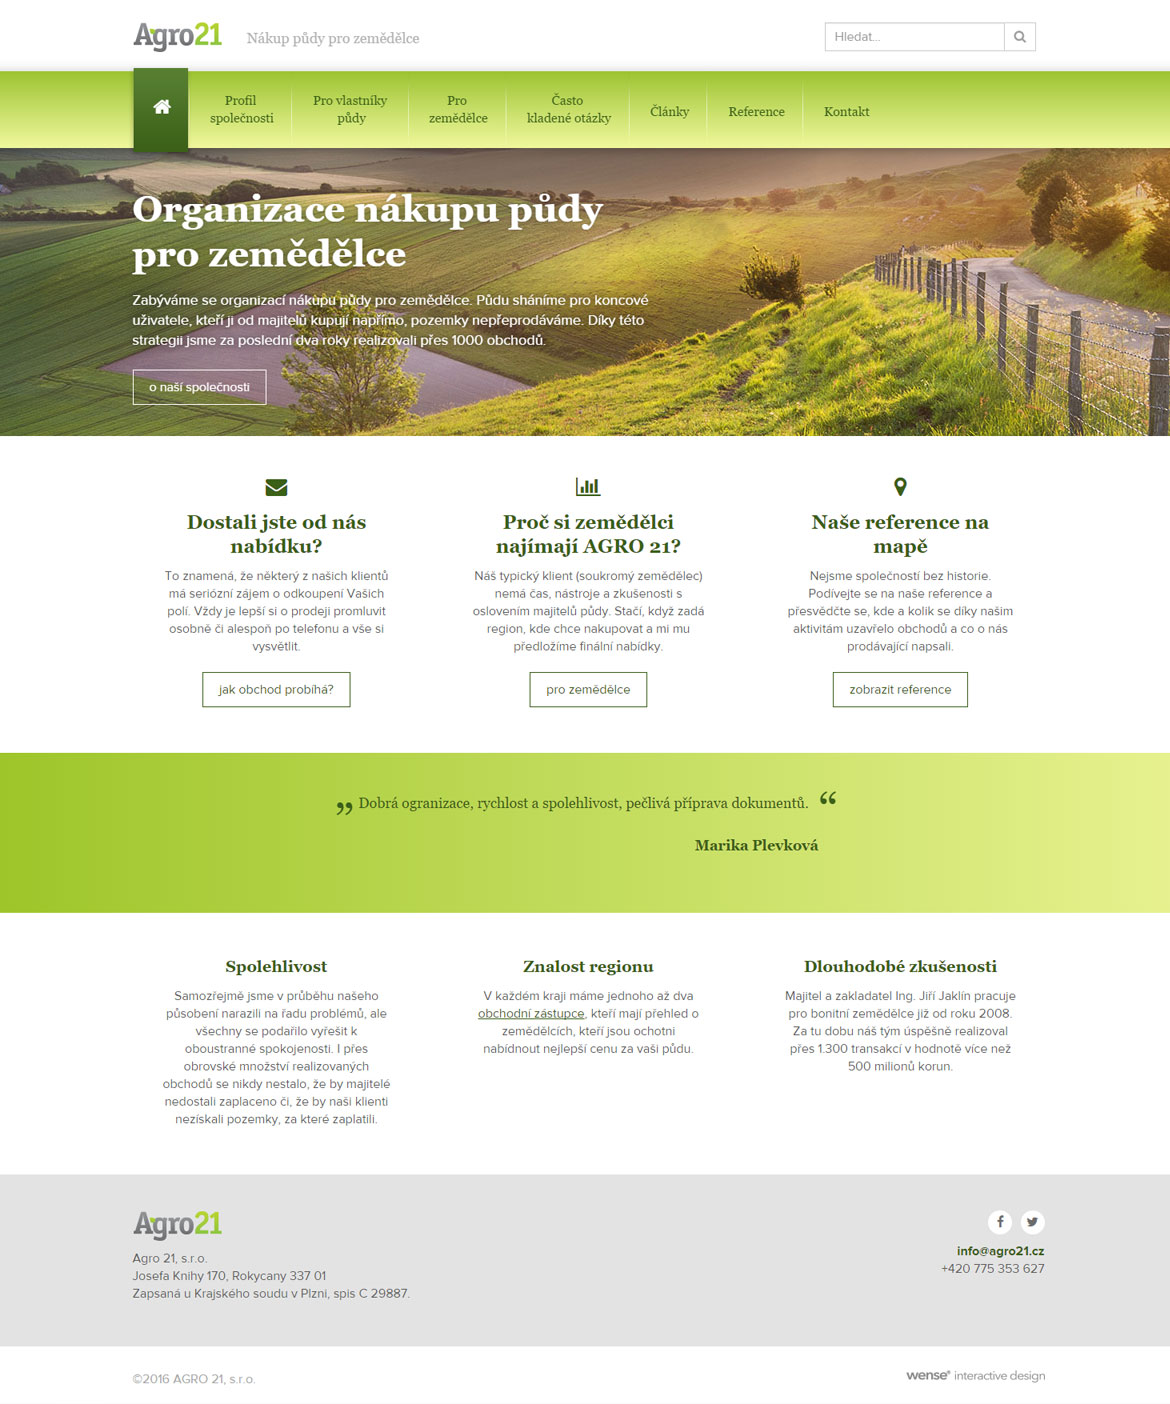 Agro21 homepage